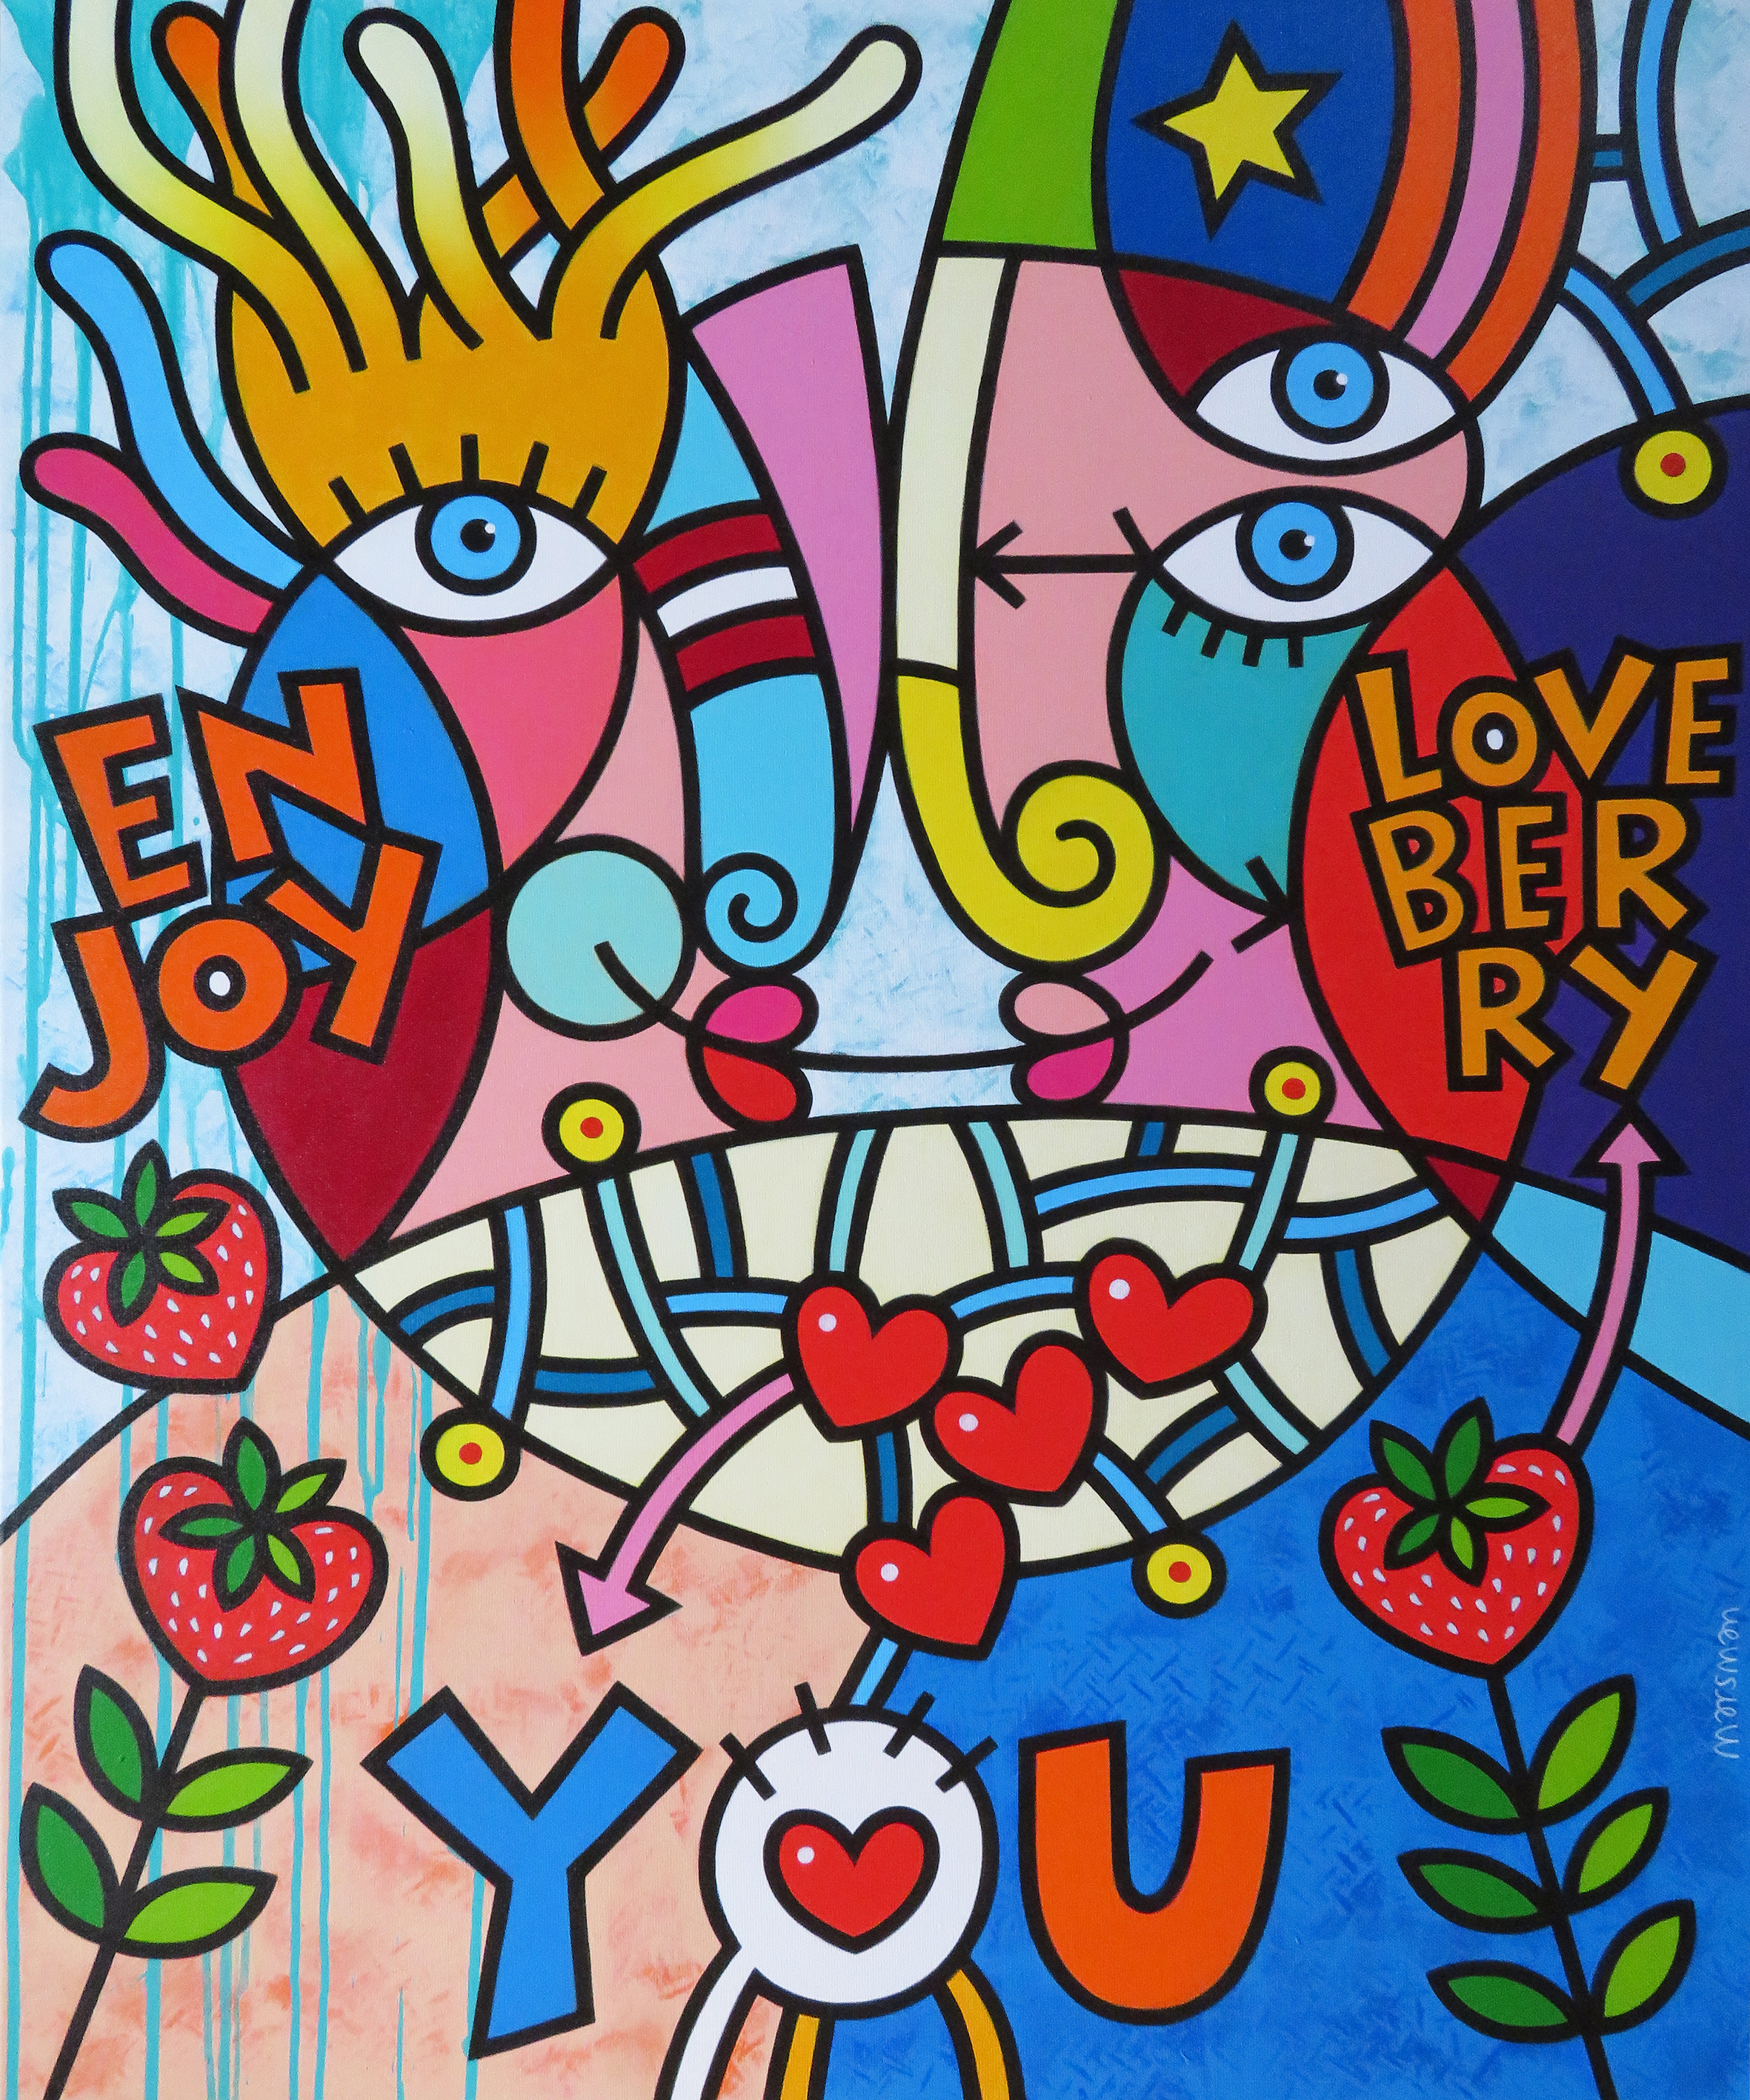 "<b>LOVE YOU</b> - 100 x 120 x 3 cm - acrylic on canvas -   <a style=""color: red; text-decoration: none"" href=""mailto:jpgpmarsman@onsbrabantnet.nl"">BESTEL</a>"